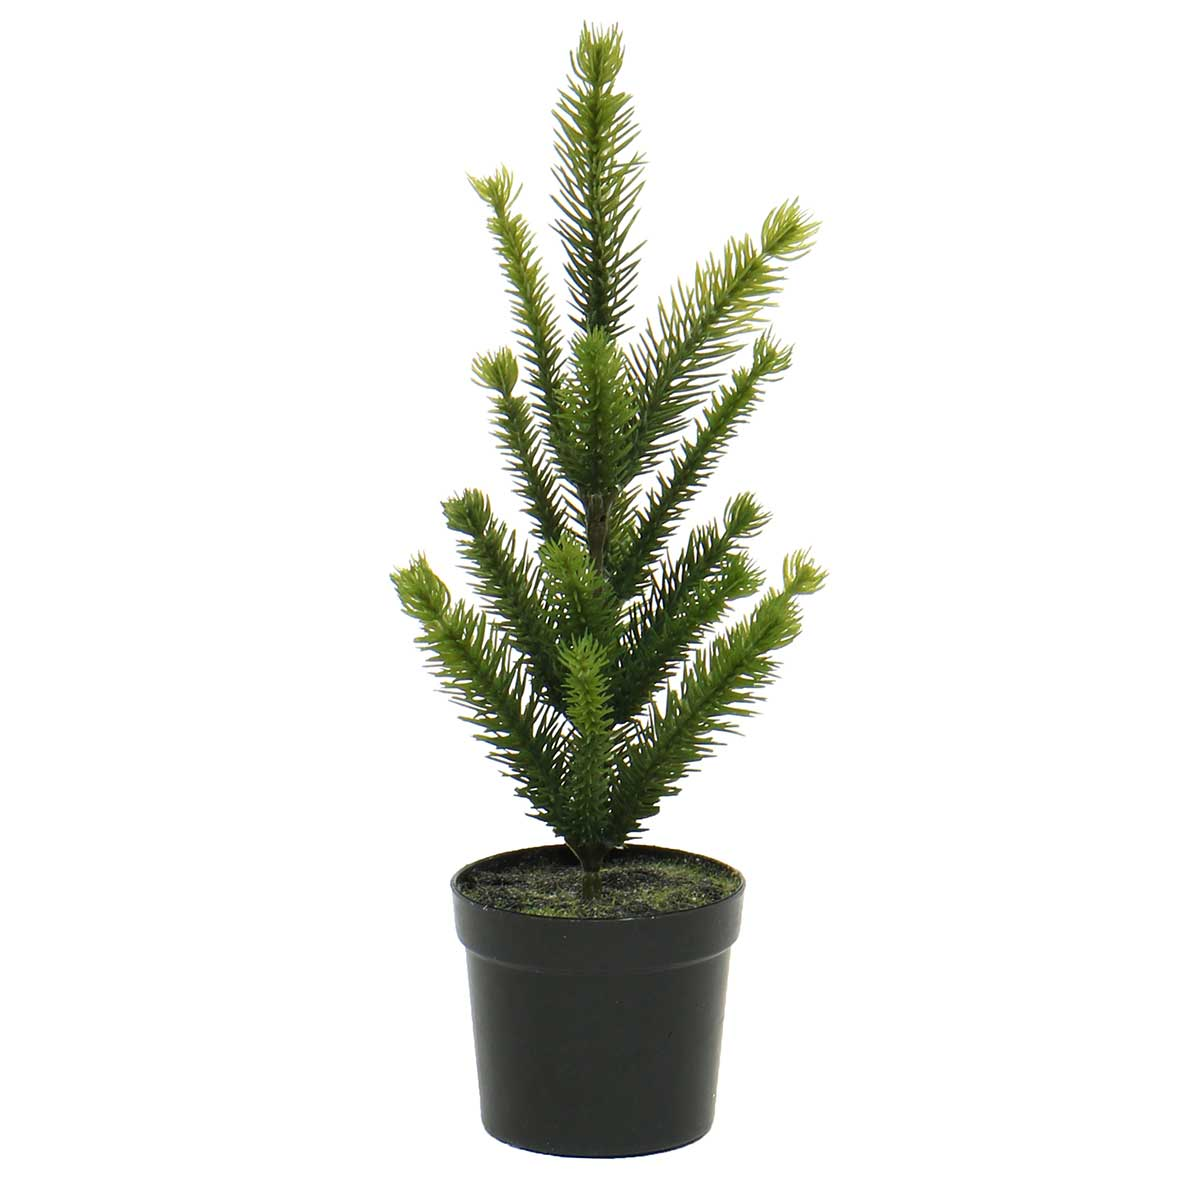 FIR TREE IN BLACK